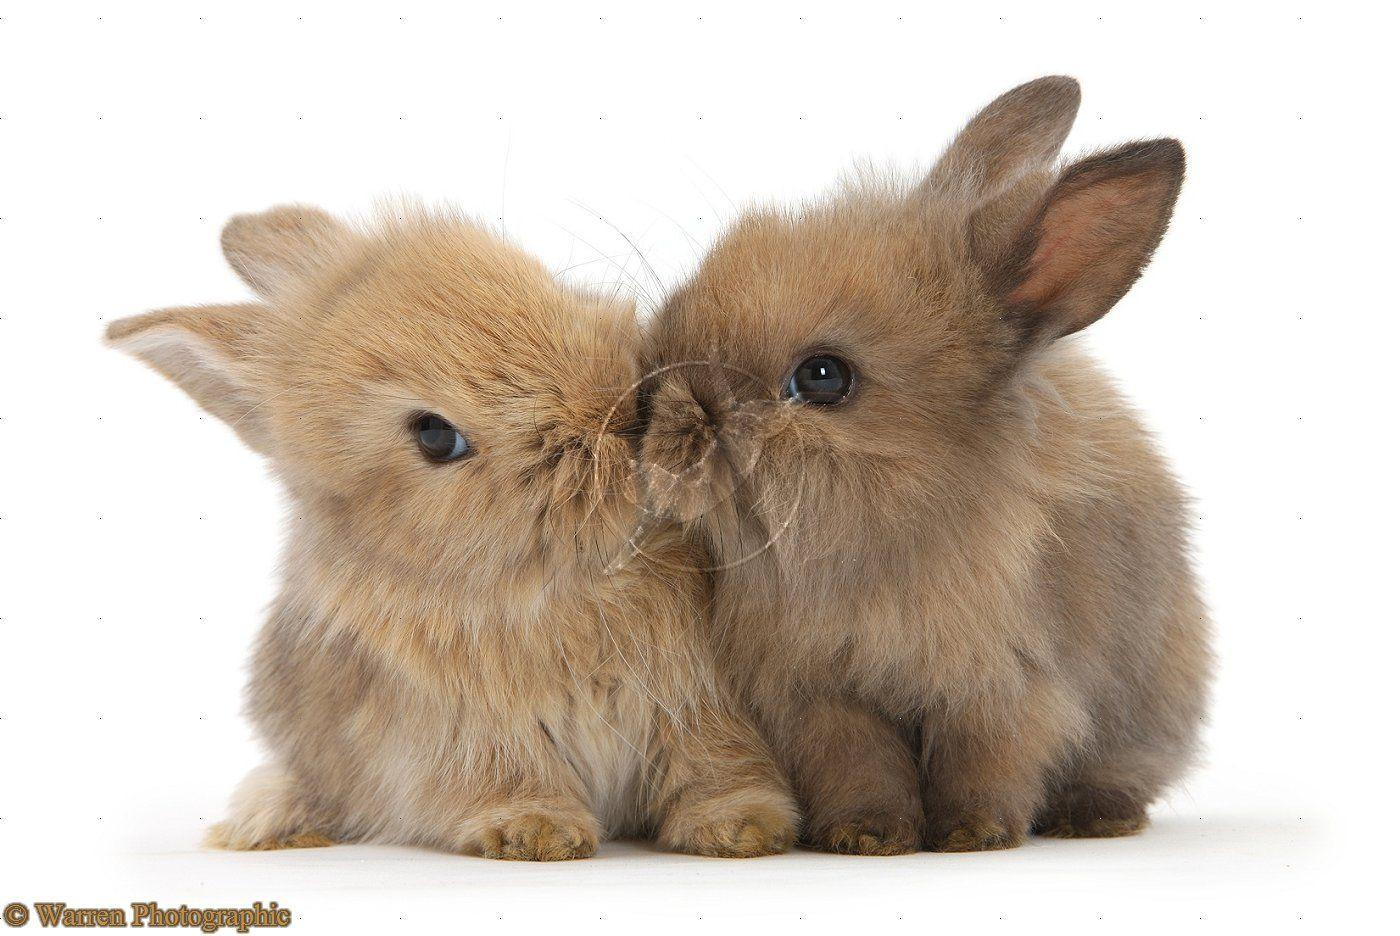 Cute Bunnies Wallpapers - Wallpaper Cave - photo#43